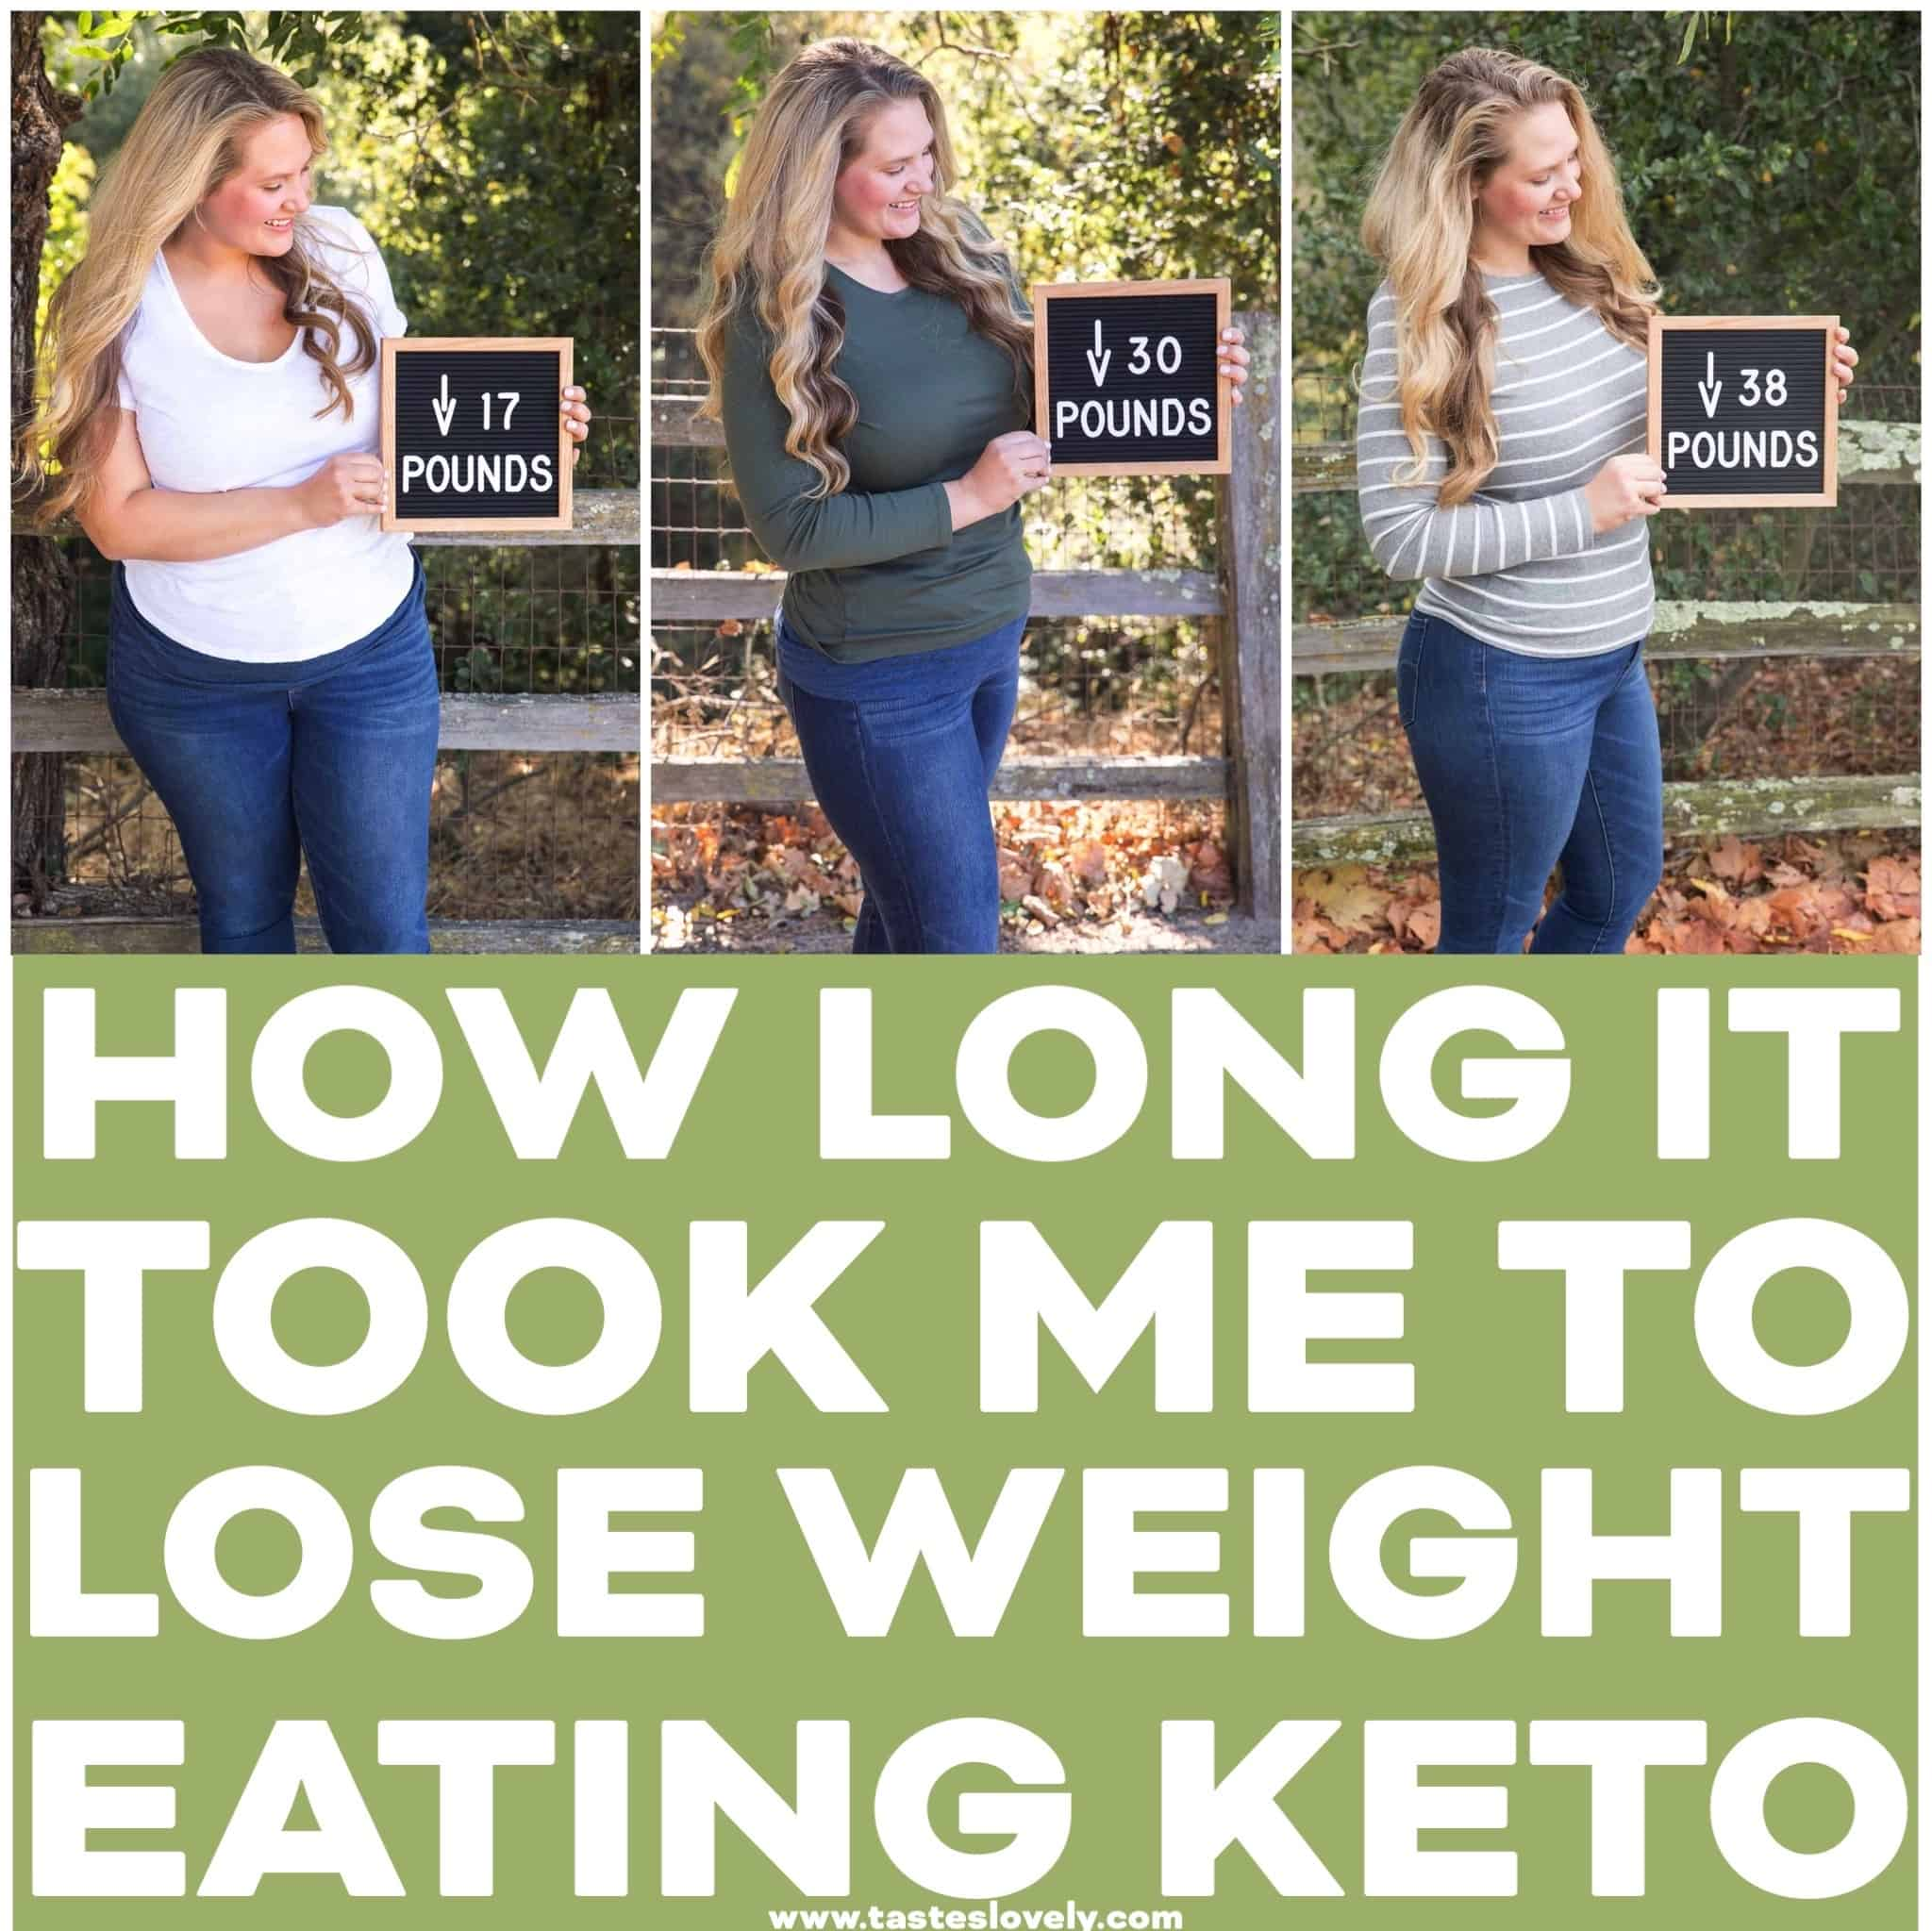 How Long It Took Me To Lose Weight Eating Keto - Tastes Lovely